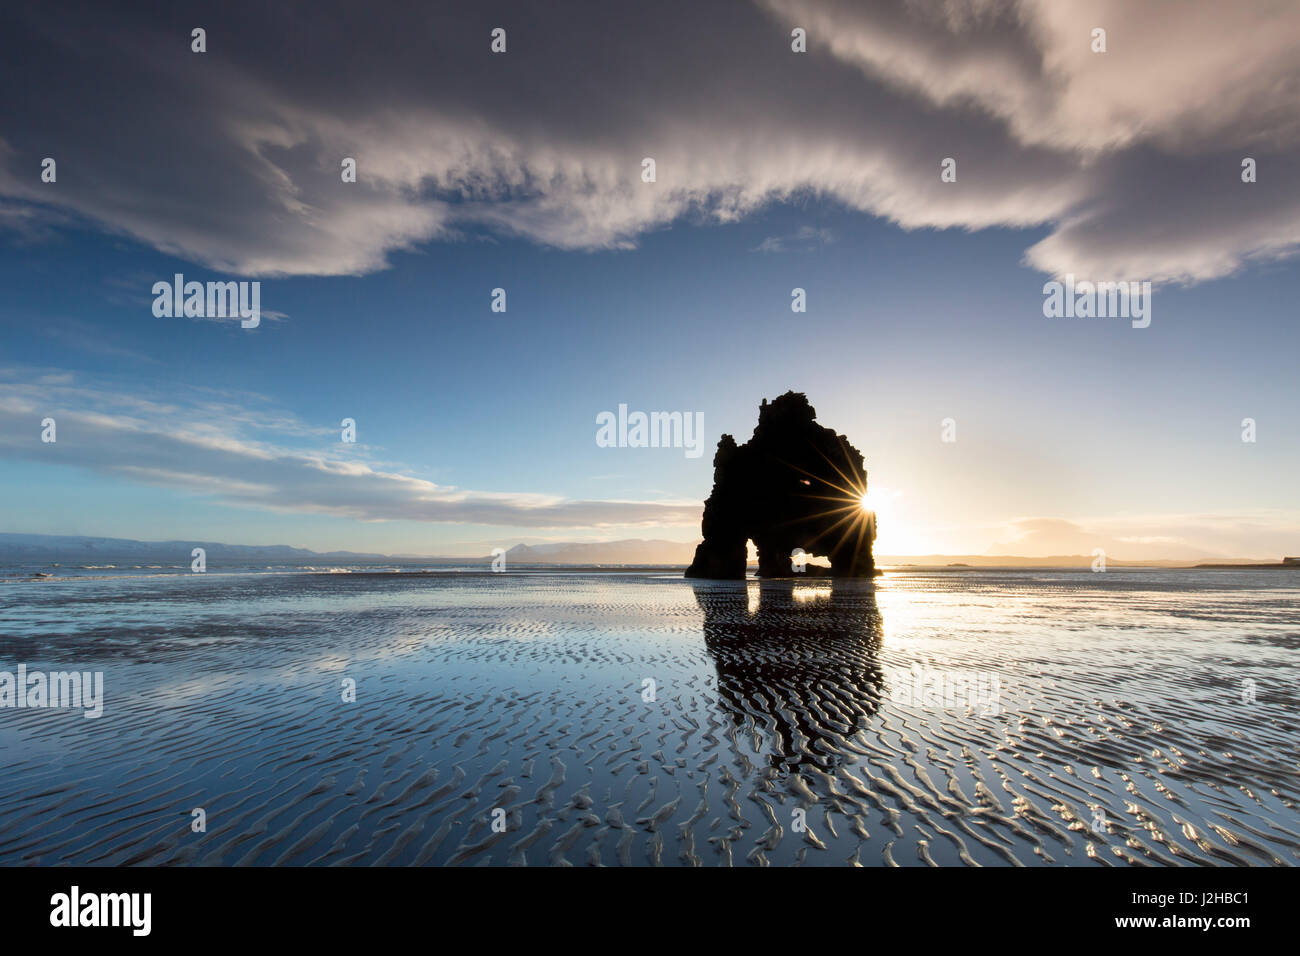 hvitserkur-15-m-high-basalt-sea-stack-al